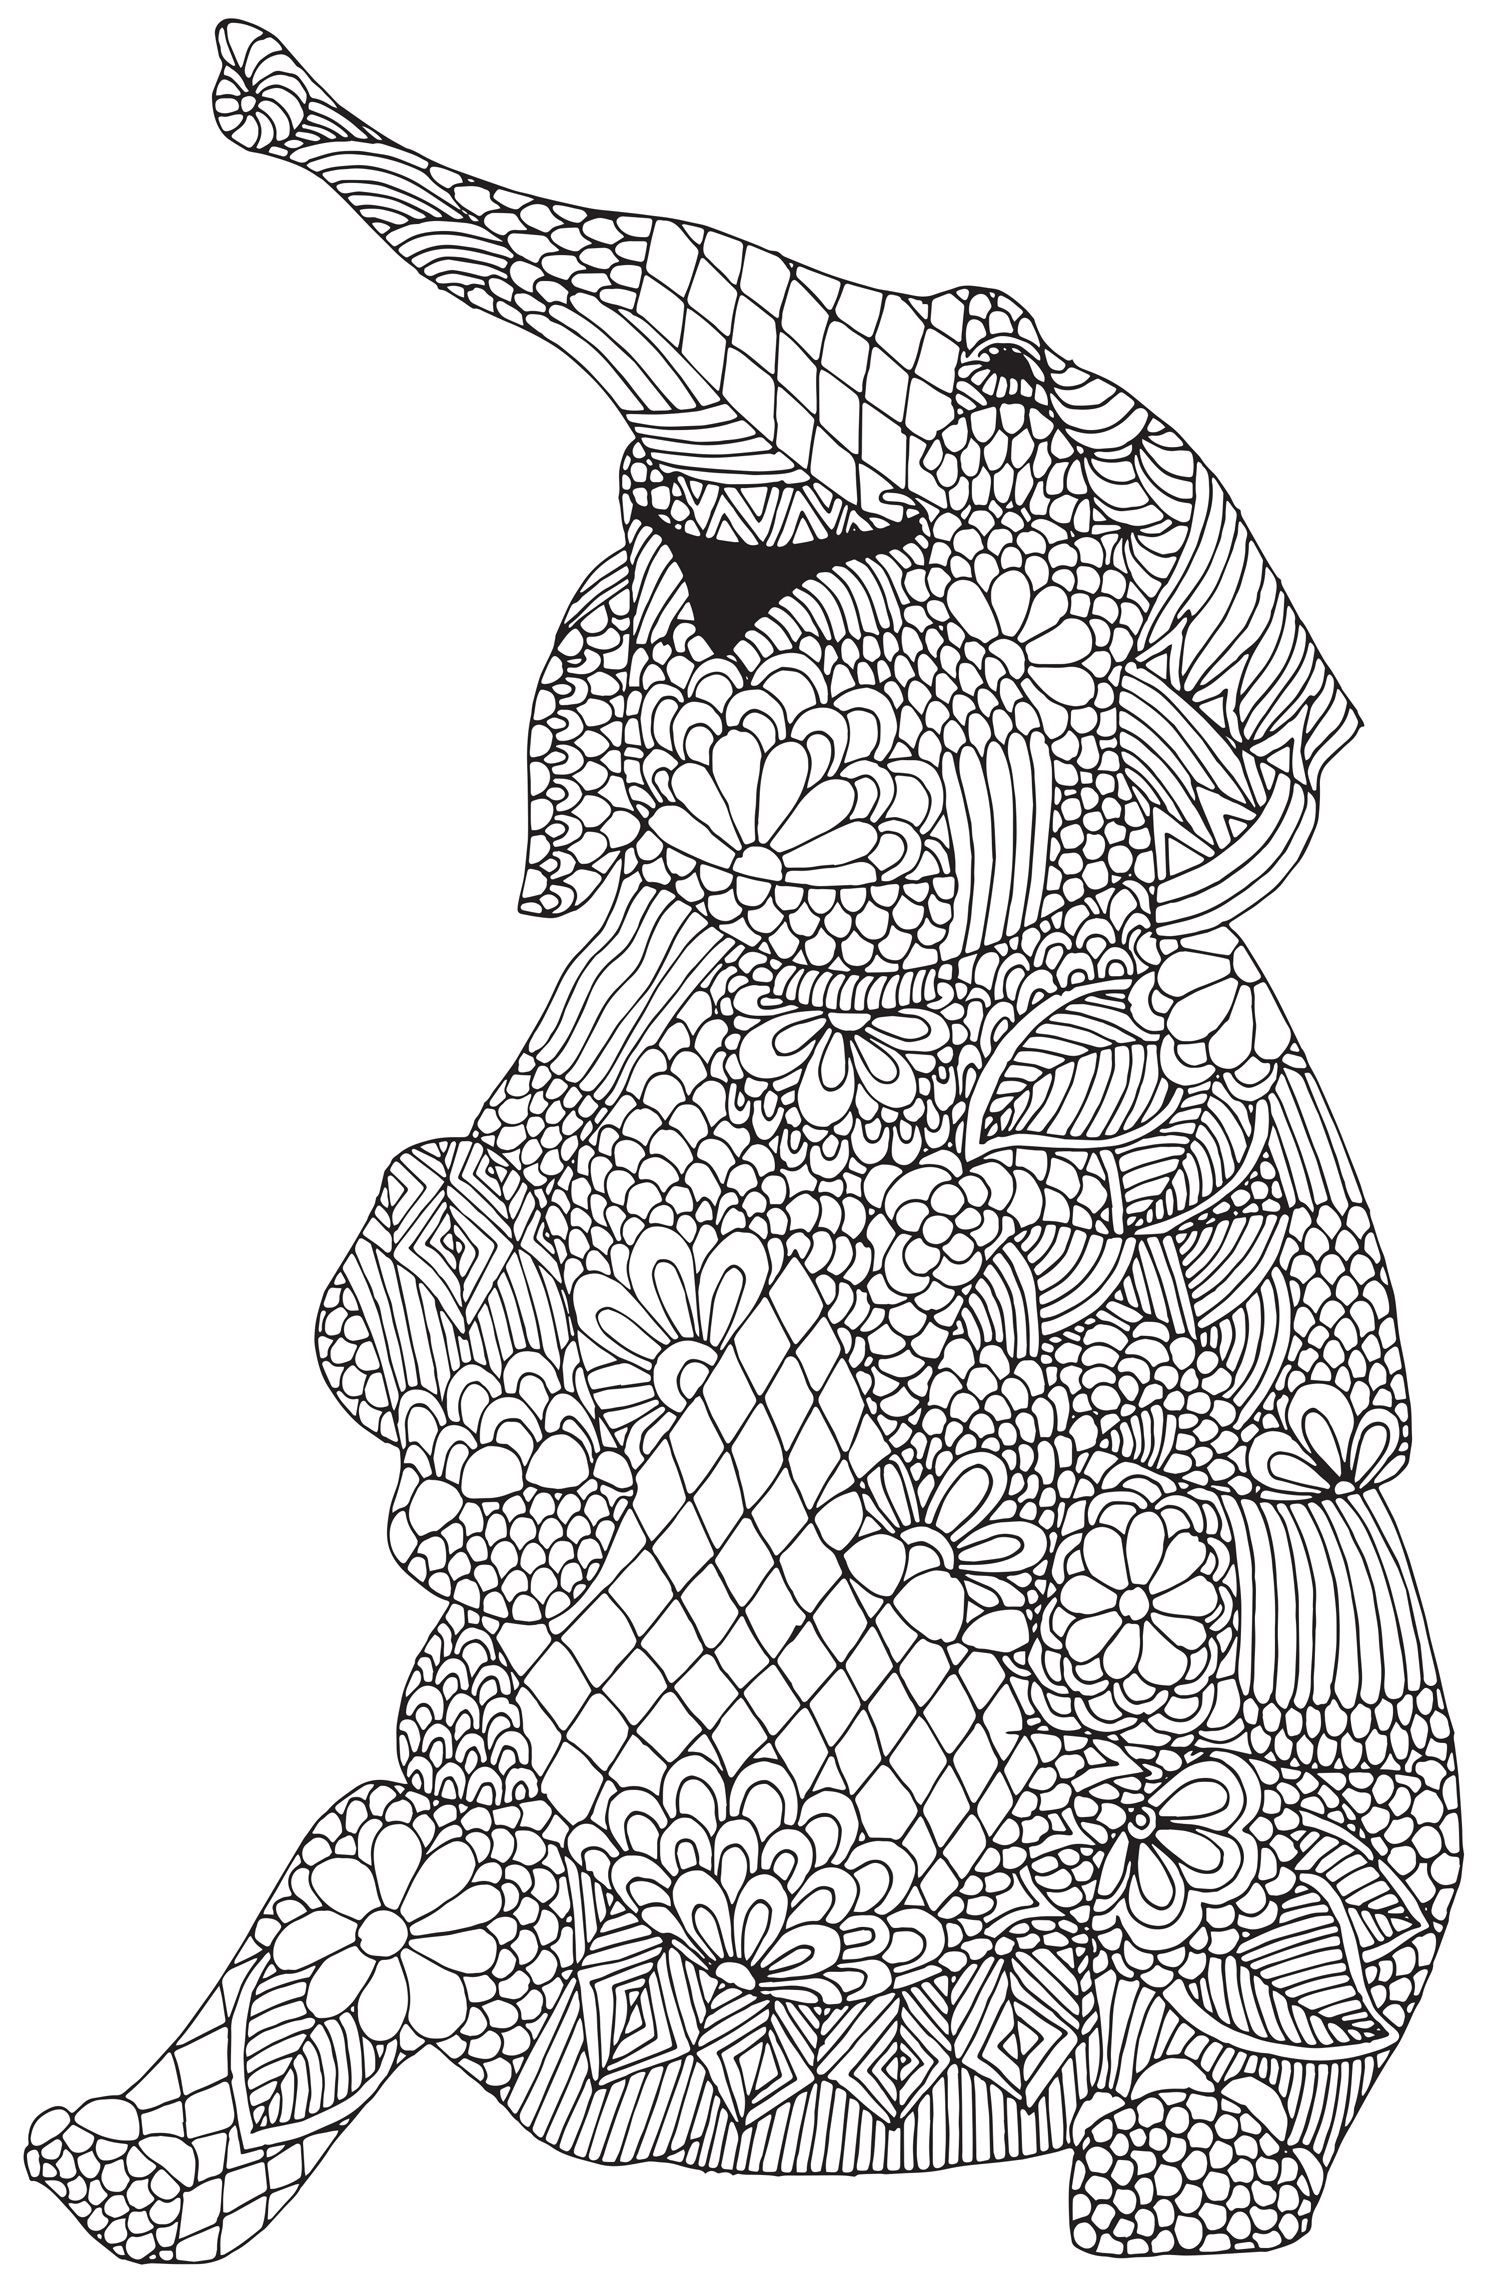 1487x2284 Mystical Animal Abstract Coloring Pages Free Best Image To Color